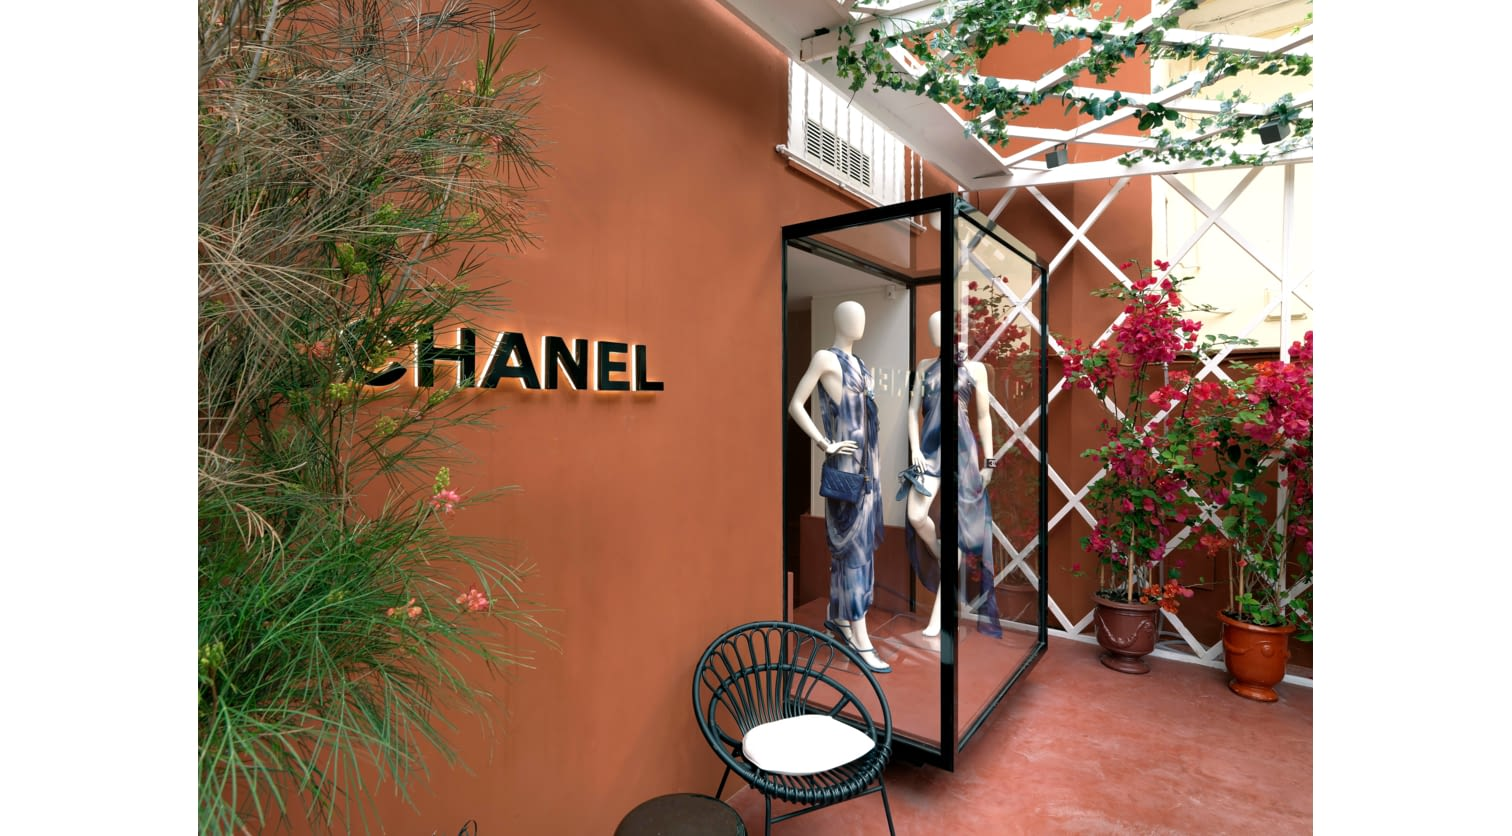 10_Boutique_Chanel_Capri2018_0022_HD.jpg